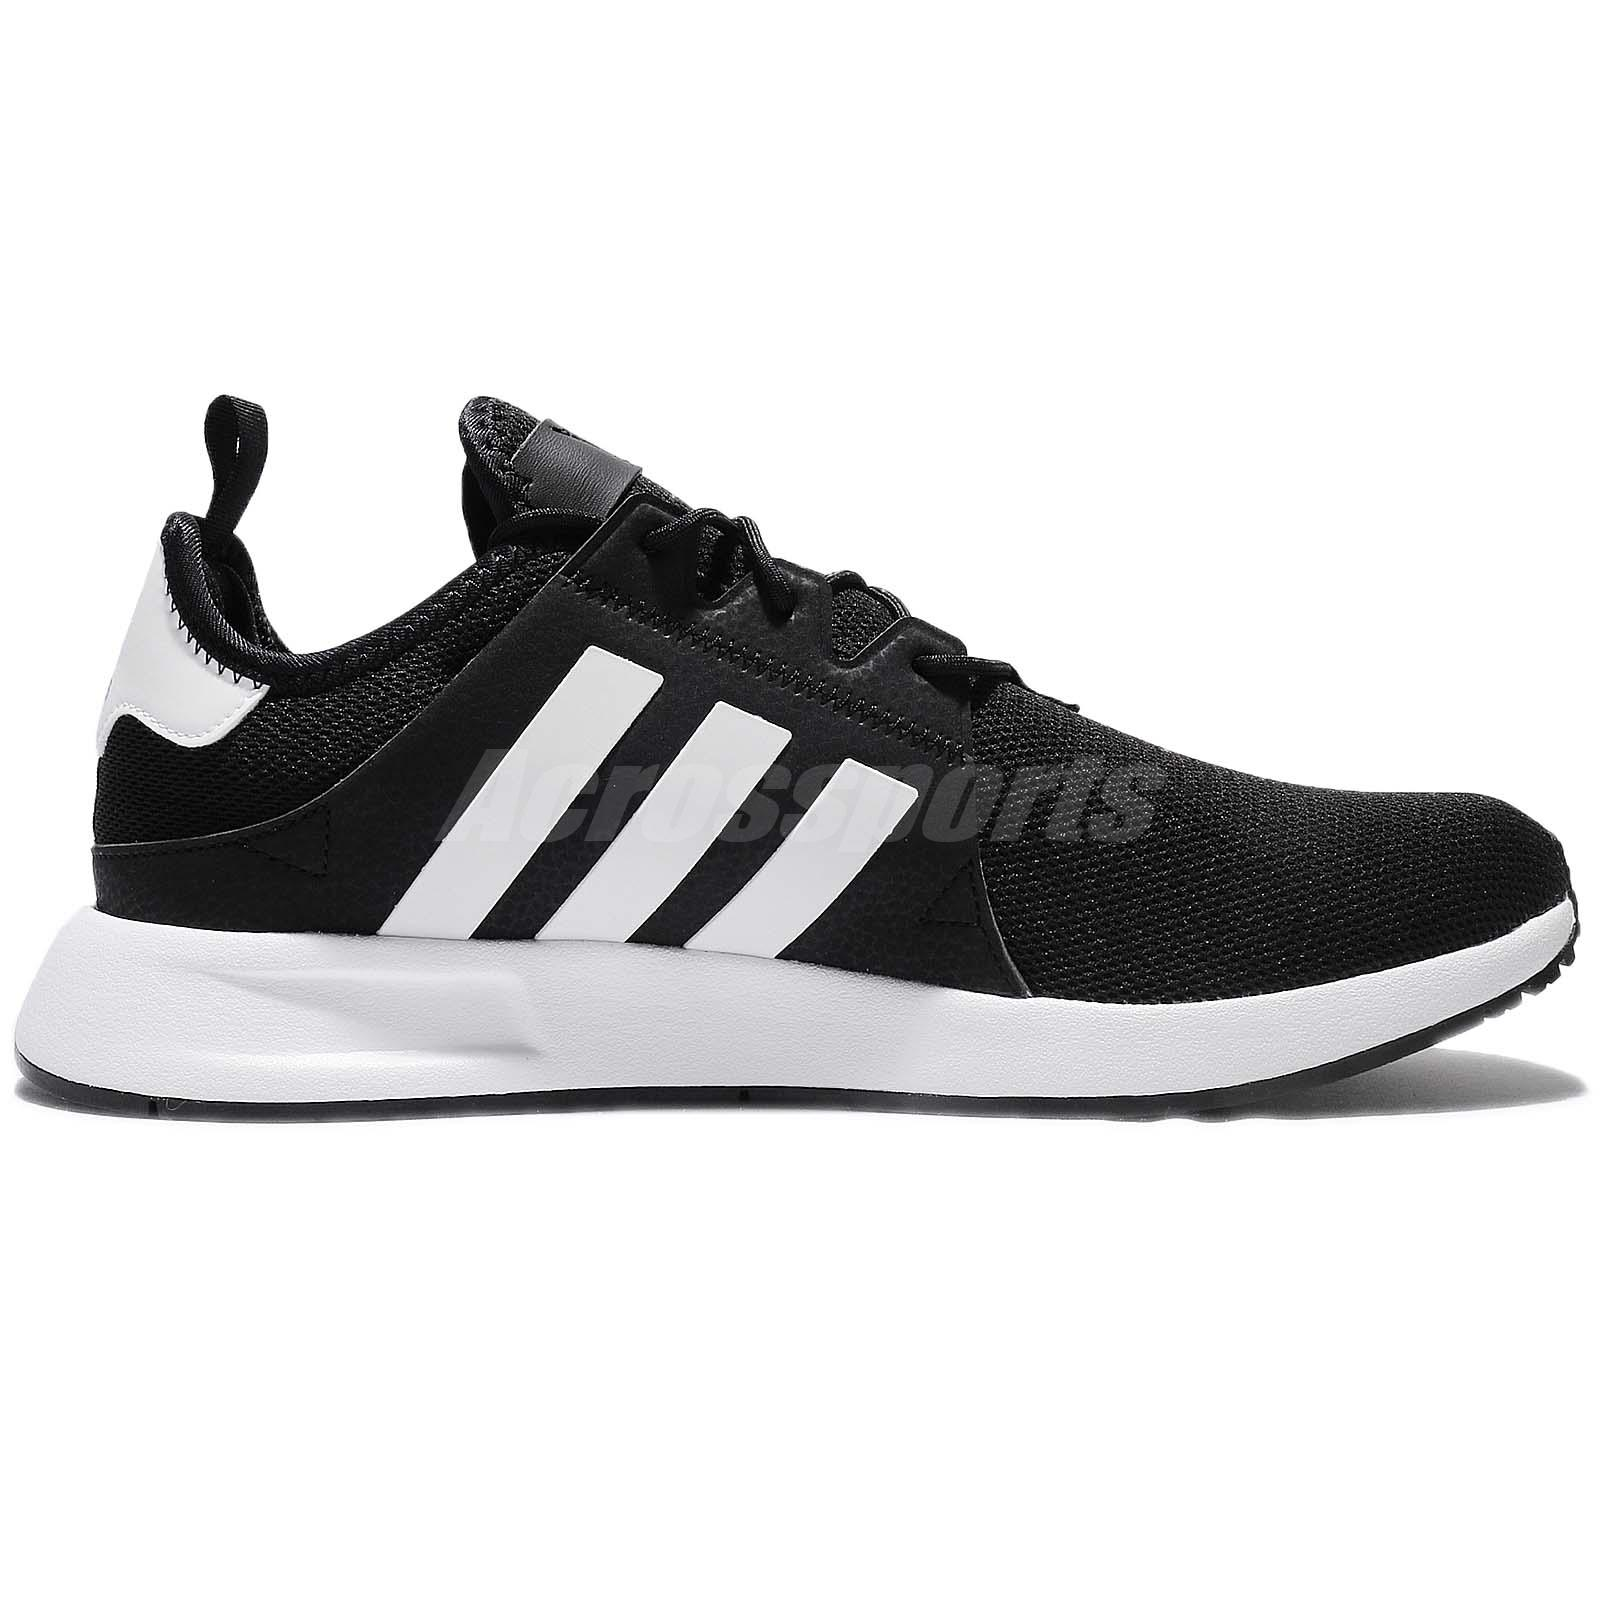 adidas x_plr mens. condition: brand new with box adidas x_plr mens -